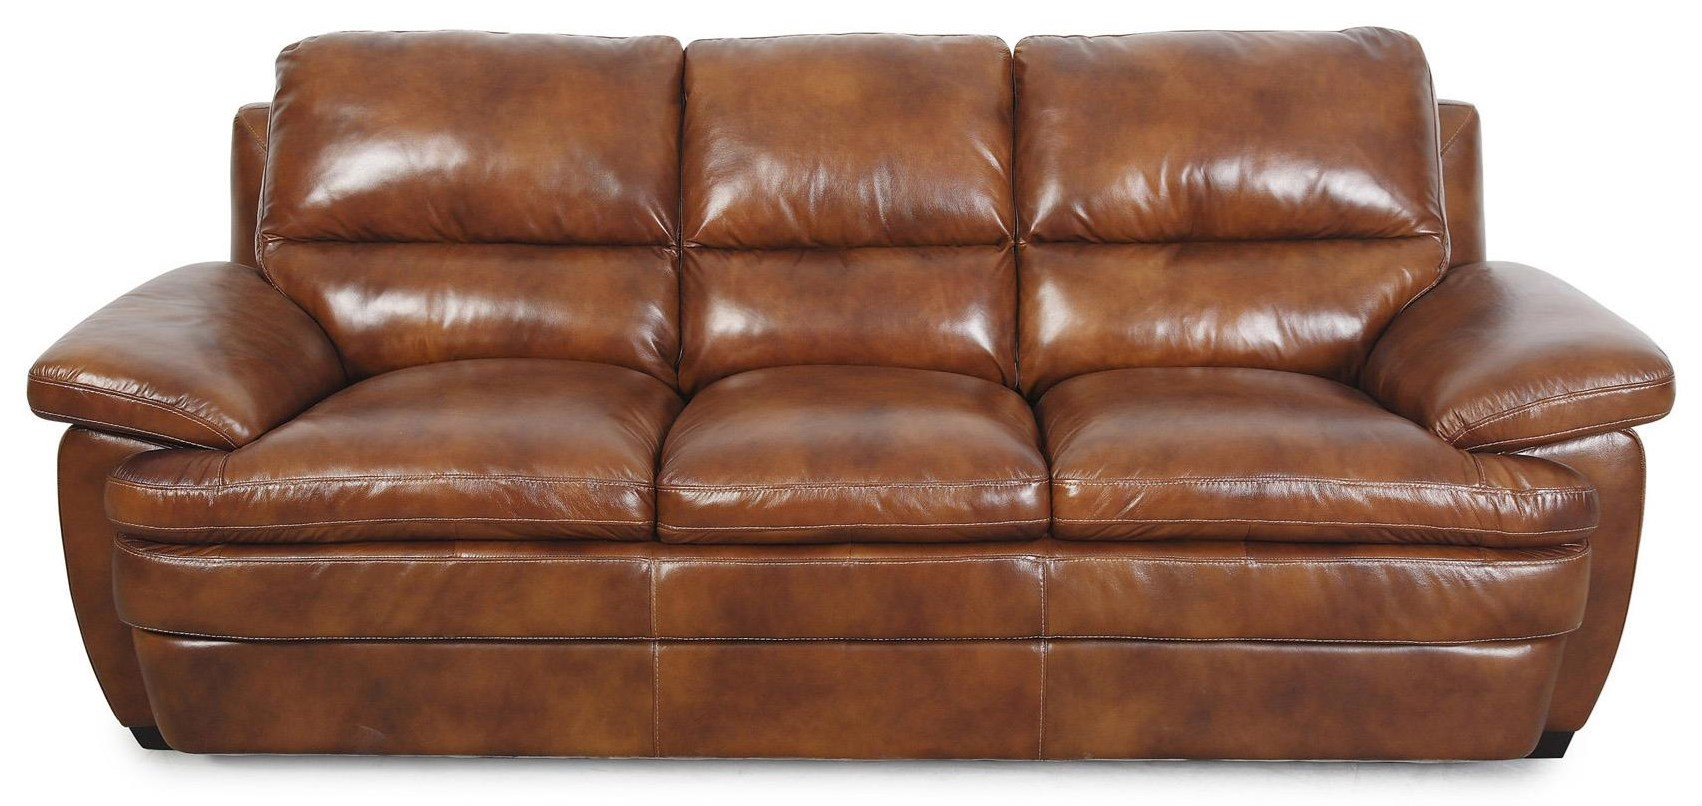 8335 Leather Sofa by Cheers at Westrich Furniture & Appliances